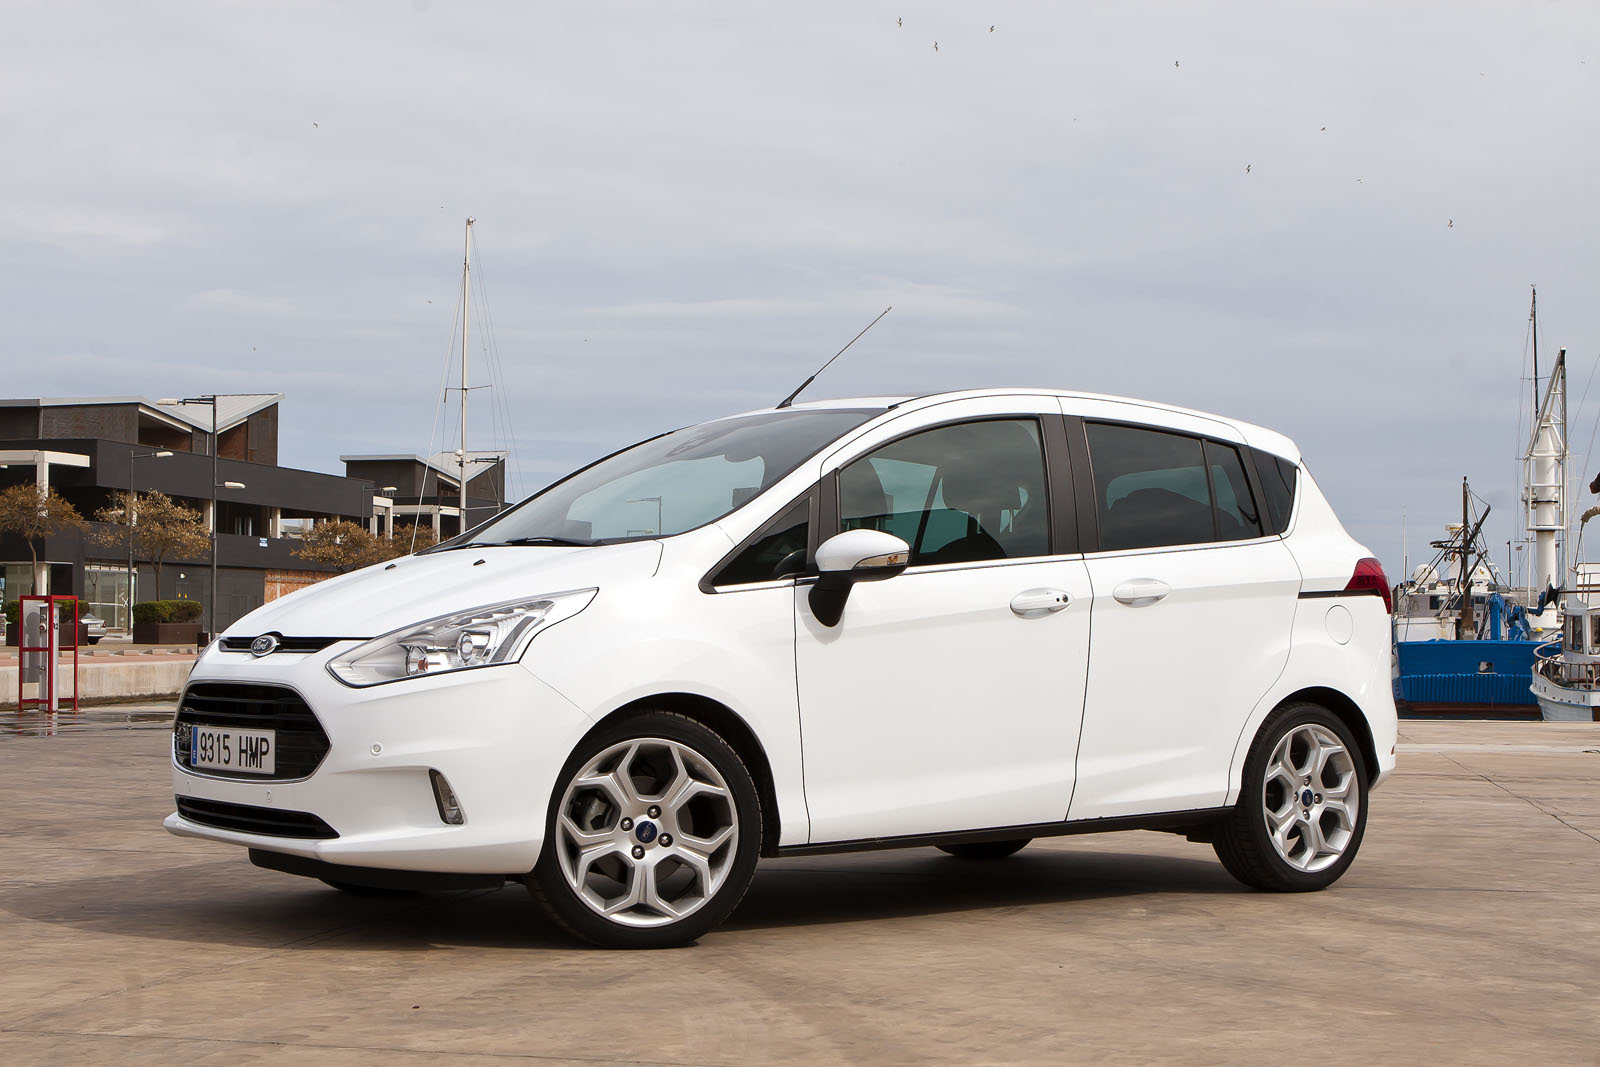 Ford B-Max 1.6 TDCI photos [3] | Carxmotor